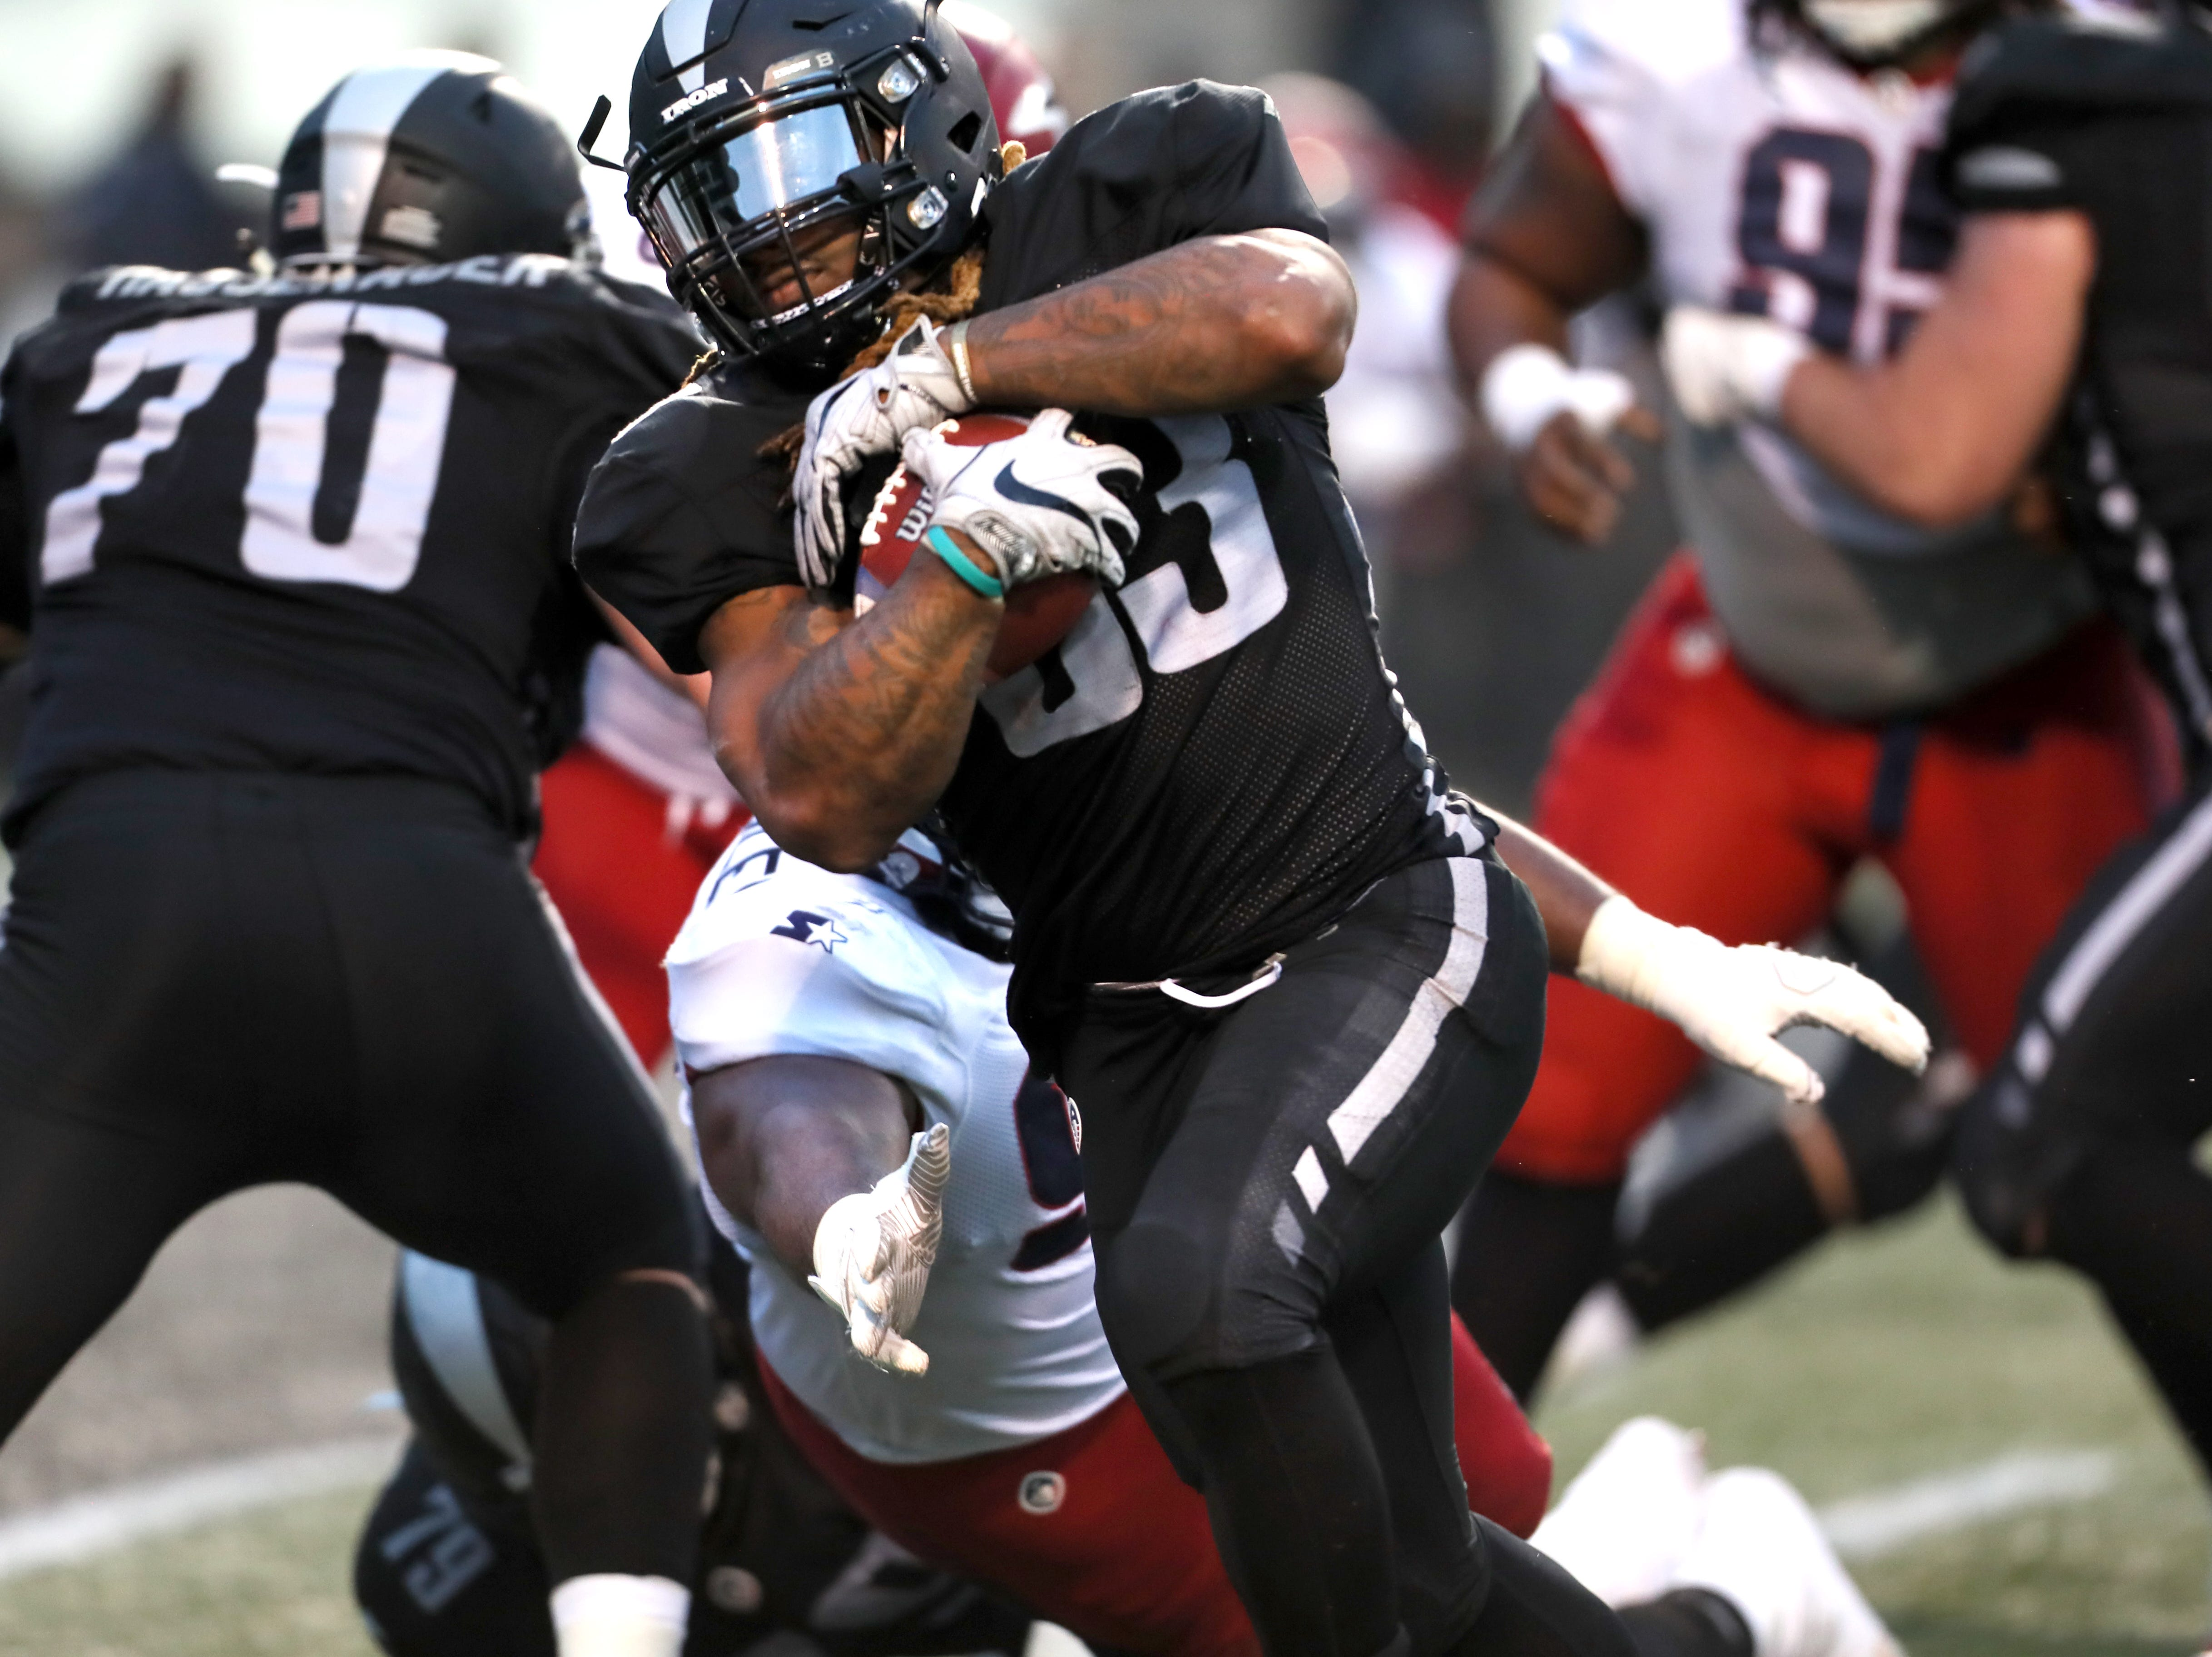 Birmingham Iron running back Trent Richardson scores a touchdown against the Memphis Express  during their game at Legion Field in Birmingham, Ala. on Sunday, Feb. 10, 2019.